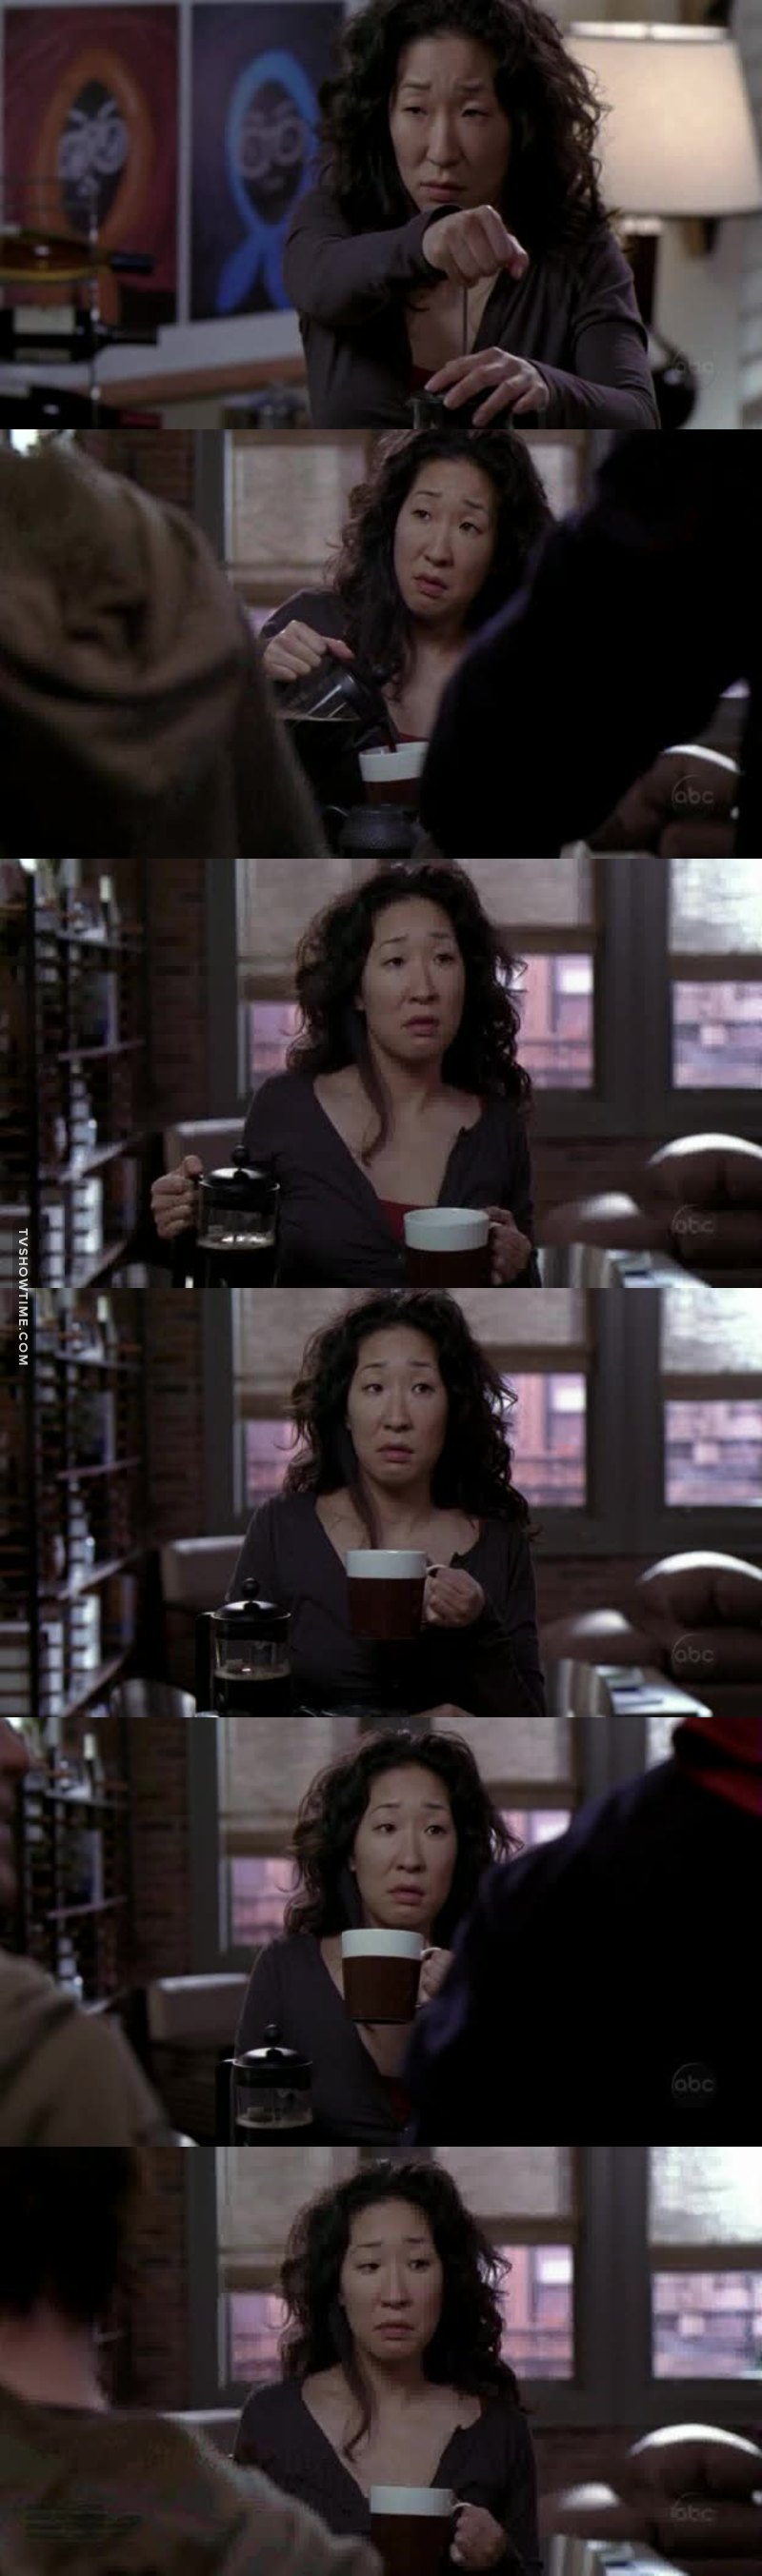 This scene is really fun, and Cristina is simply the best!!! 😂😍